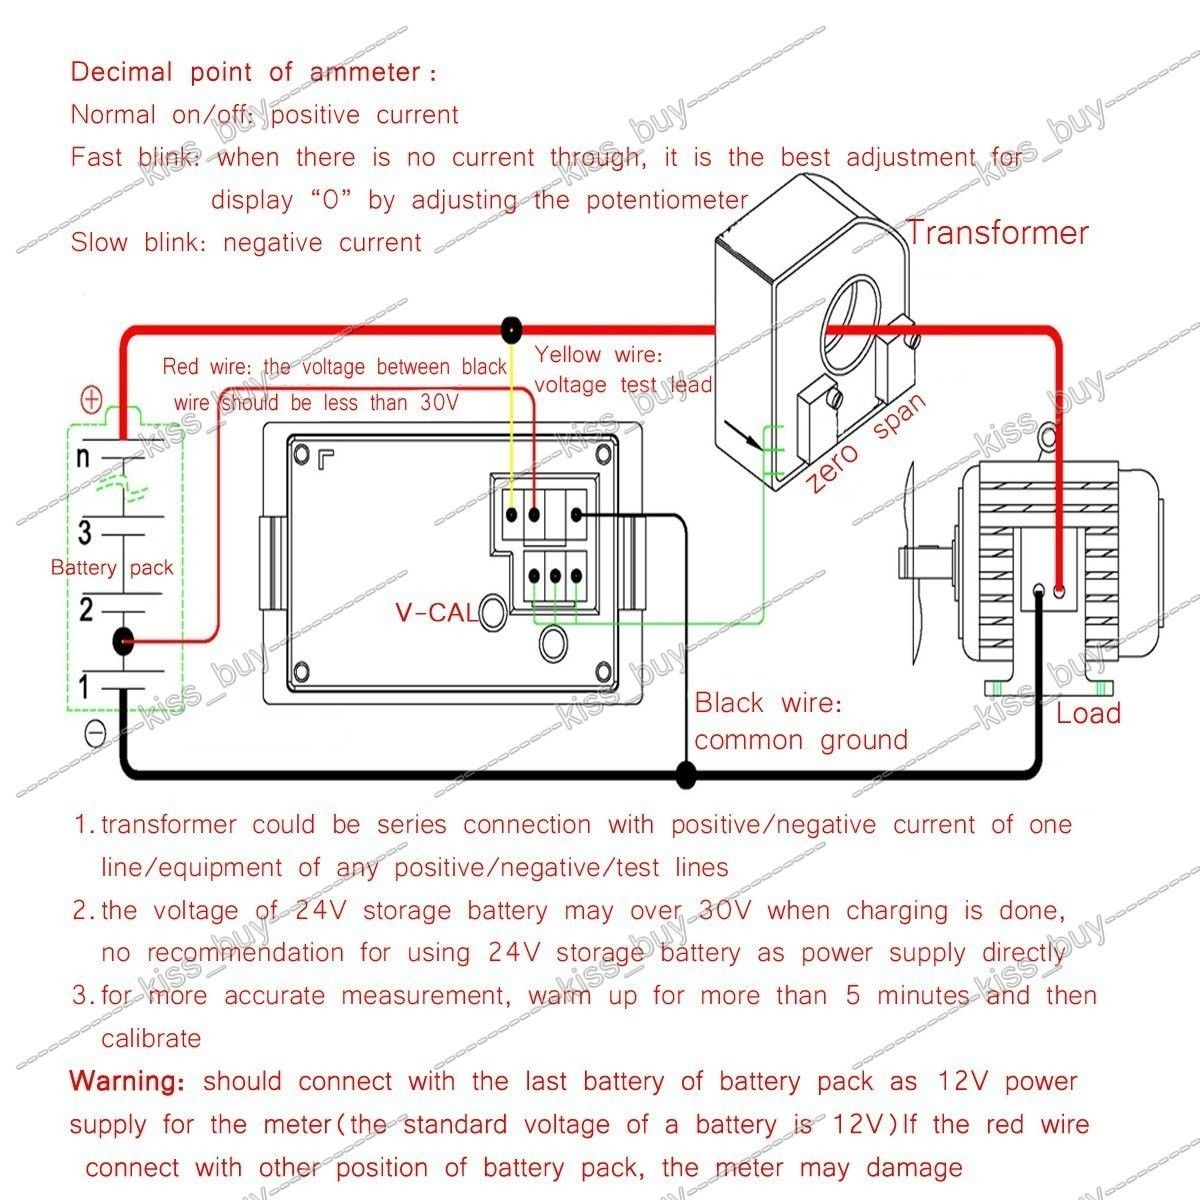 Digital Volt Amp Meter Wiring Diagram | Manual E-Books - Digital Volt Amp Meter Wiring Diagram